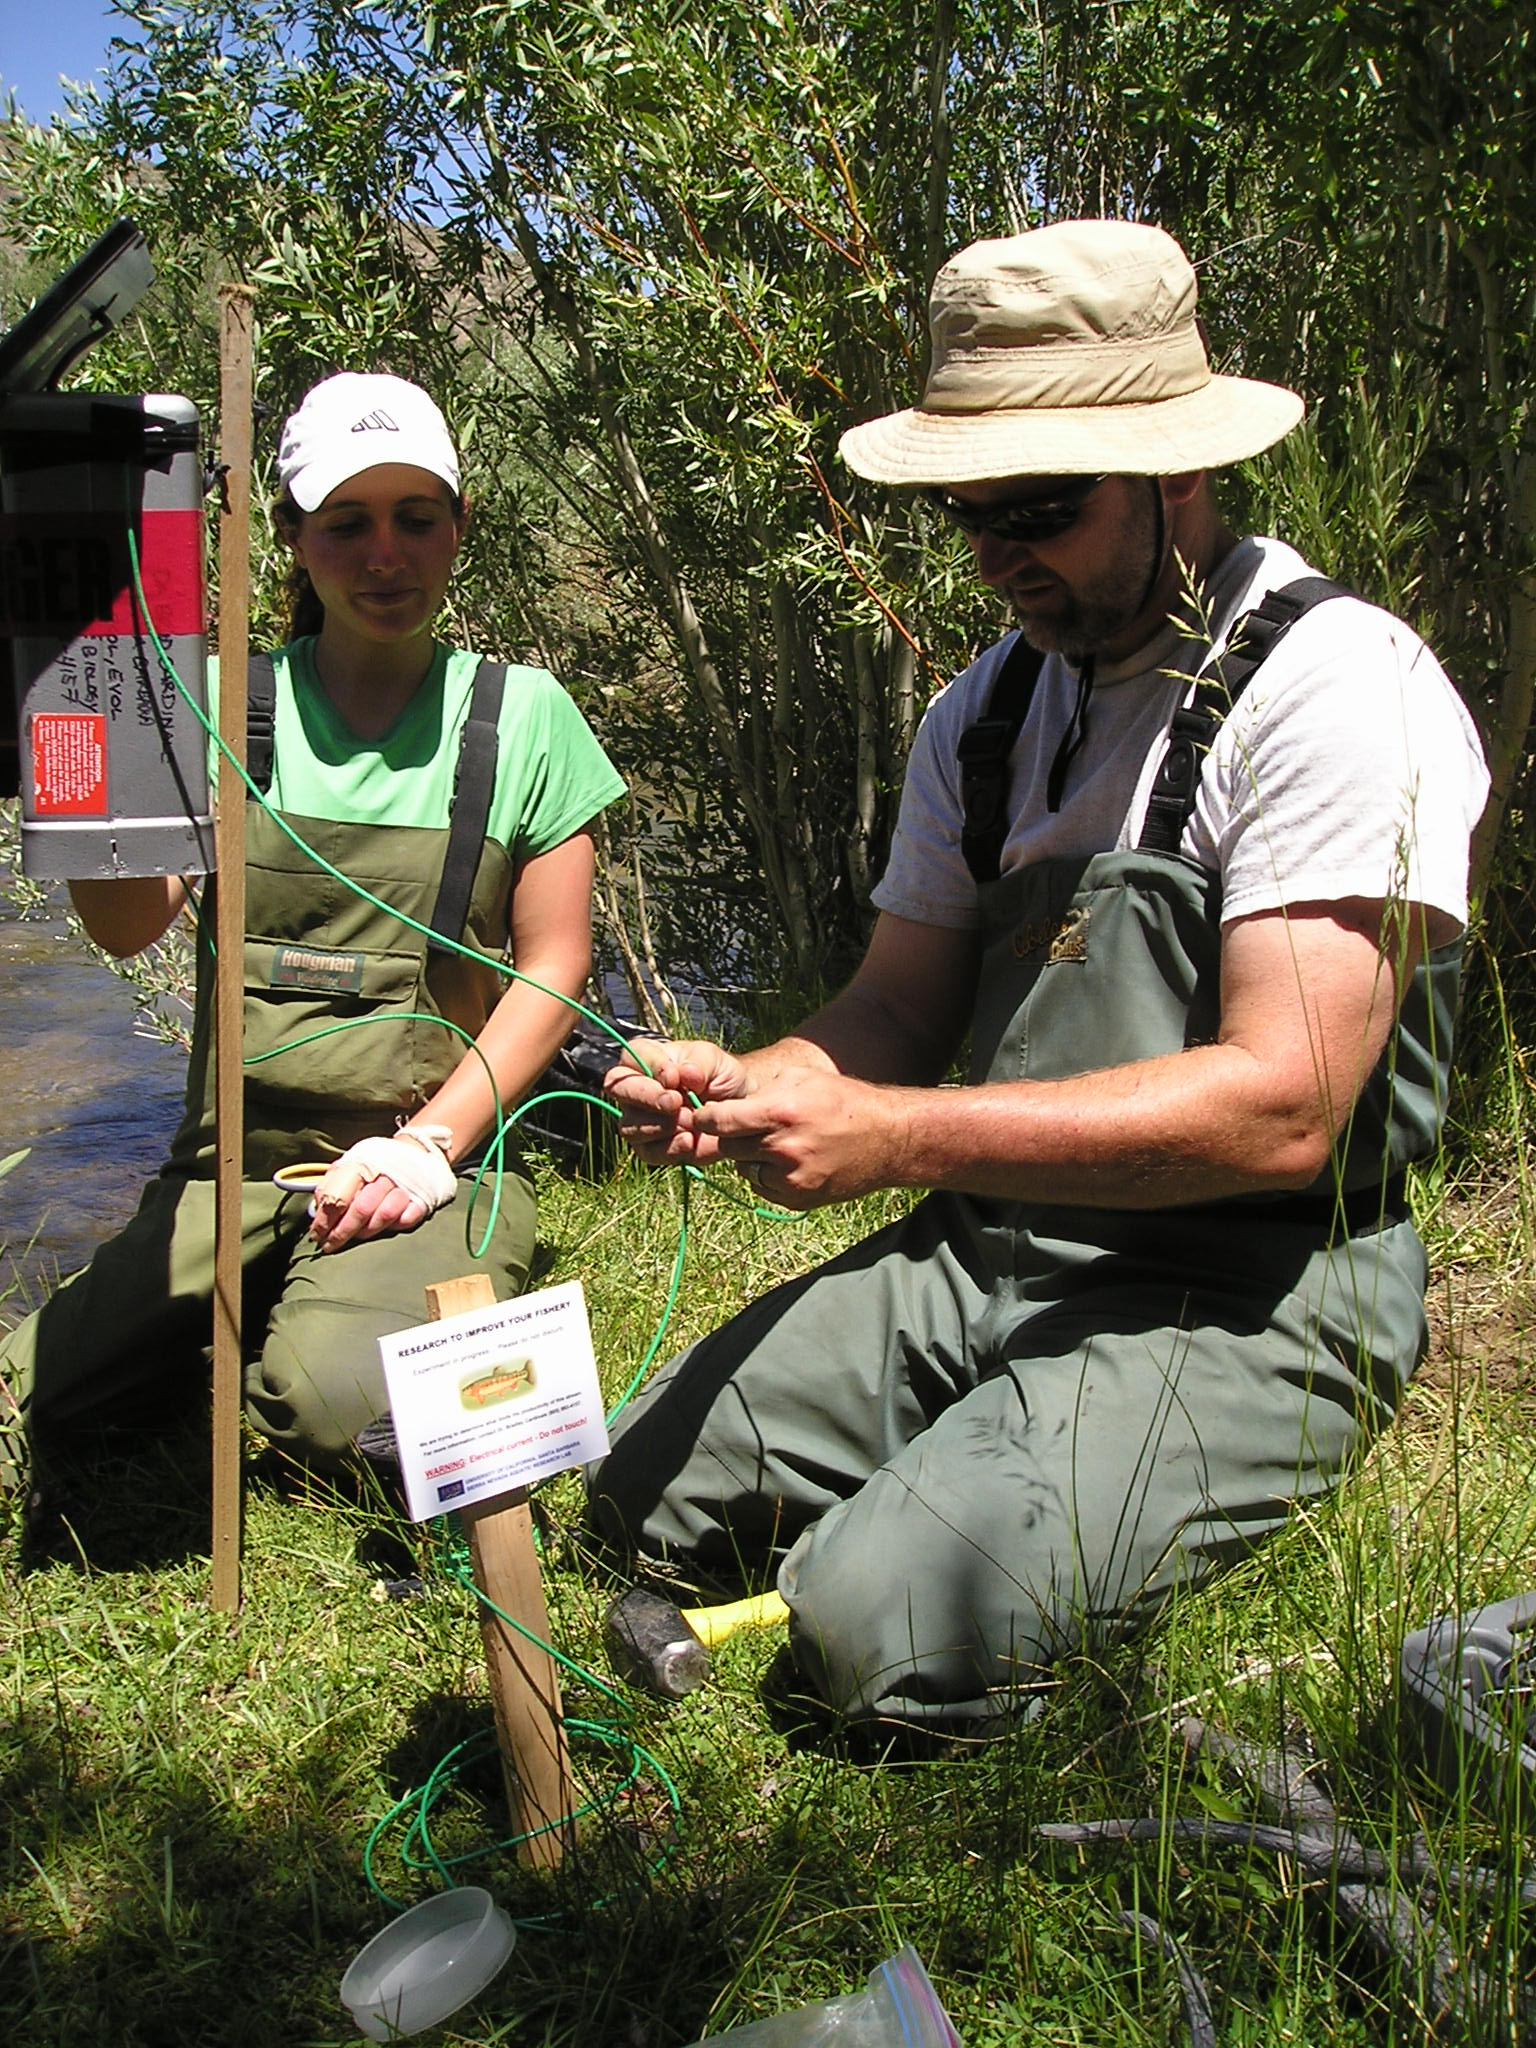 U-M ecologist Bradley Cardinale setting up an electrical fence to simulate extinction of fish in a stream. Image credit: Bradley Cardinale